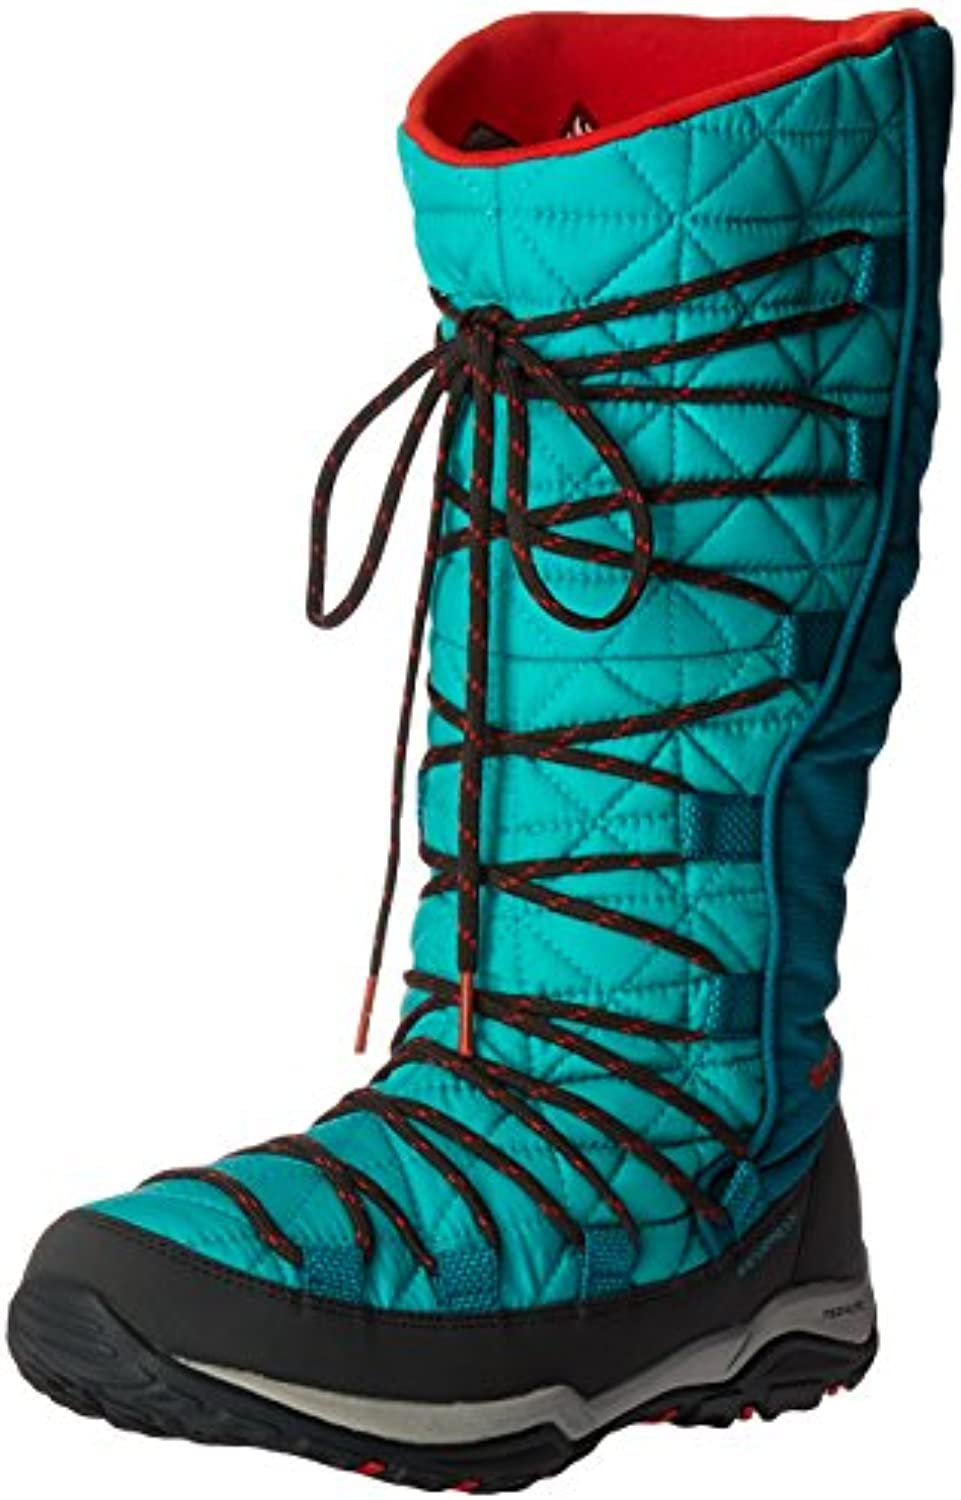 Columbia  land Omni-Heat-W, Bottes Bottes Bottes Femme - Rouge - Reef/Spicy, 36.5 EUB0183NZUFUParent 5f7ac9